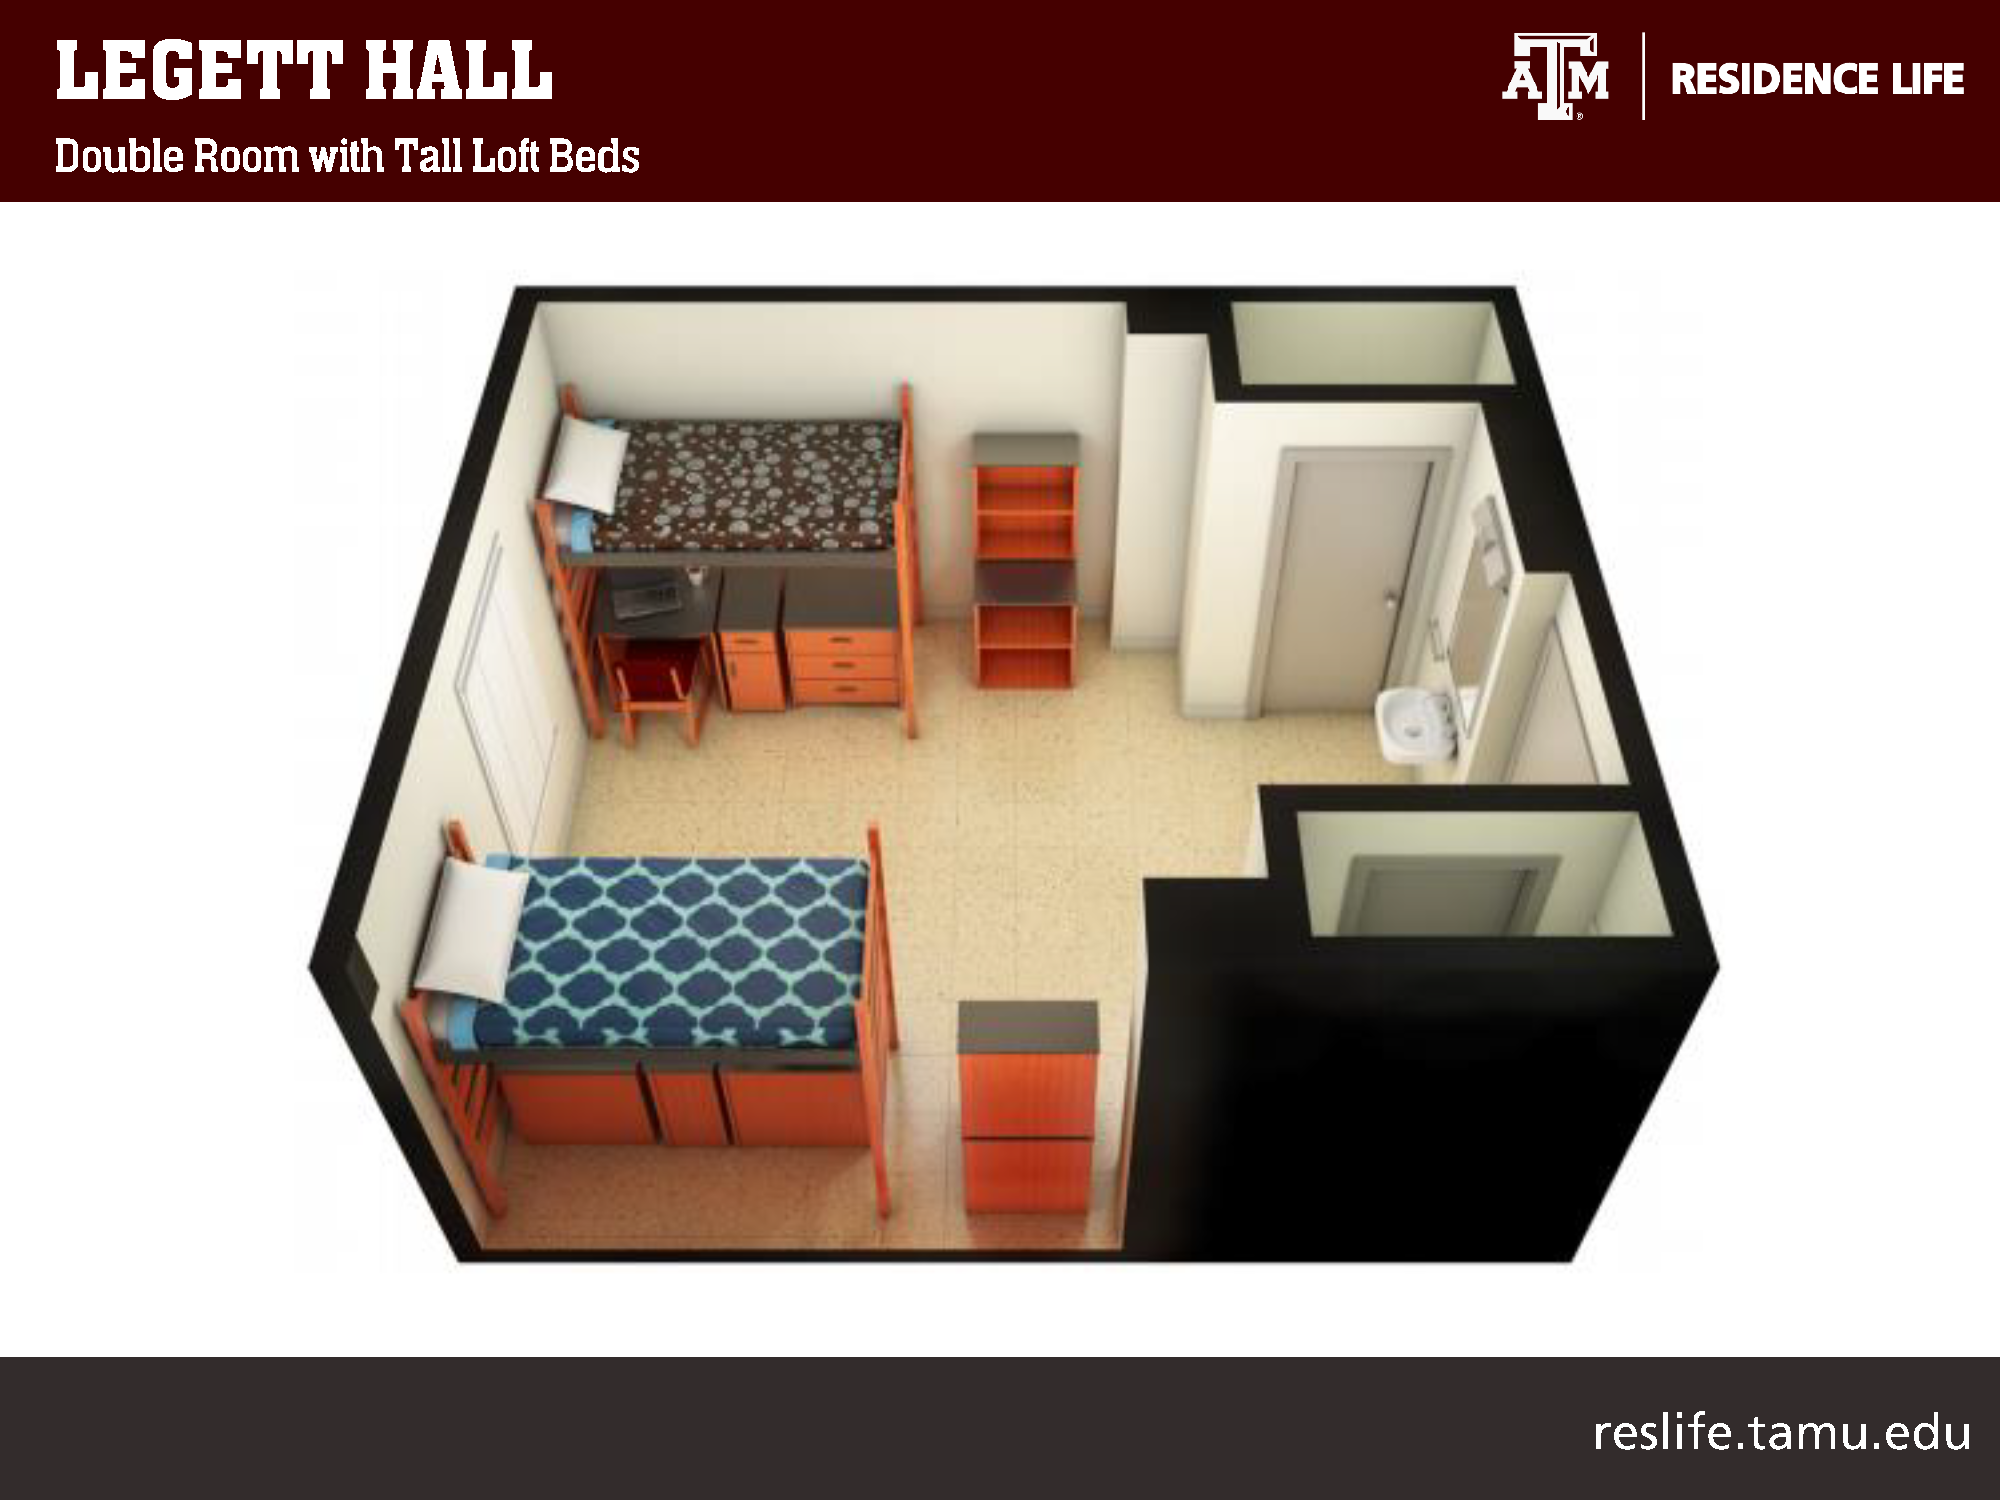 Side 3-D View of Dorm Room: two lofted beds pictured with study desk and two storage cabinets underneath each bed. 4 other storage shelves pictured in room. 1 sink vanity and two closets.